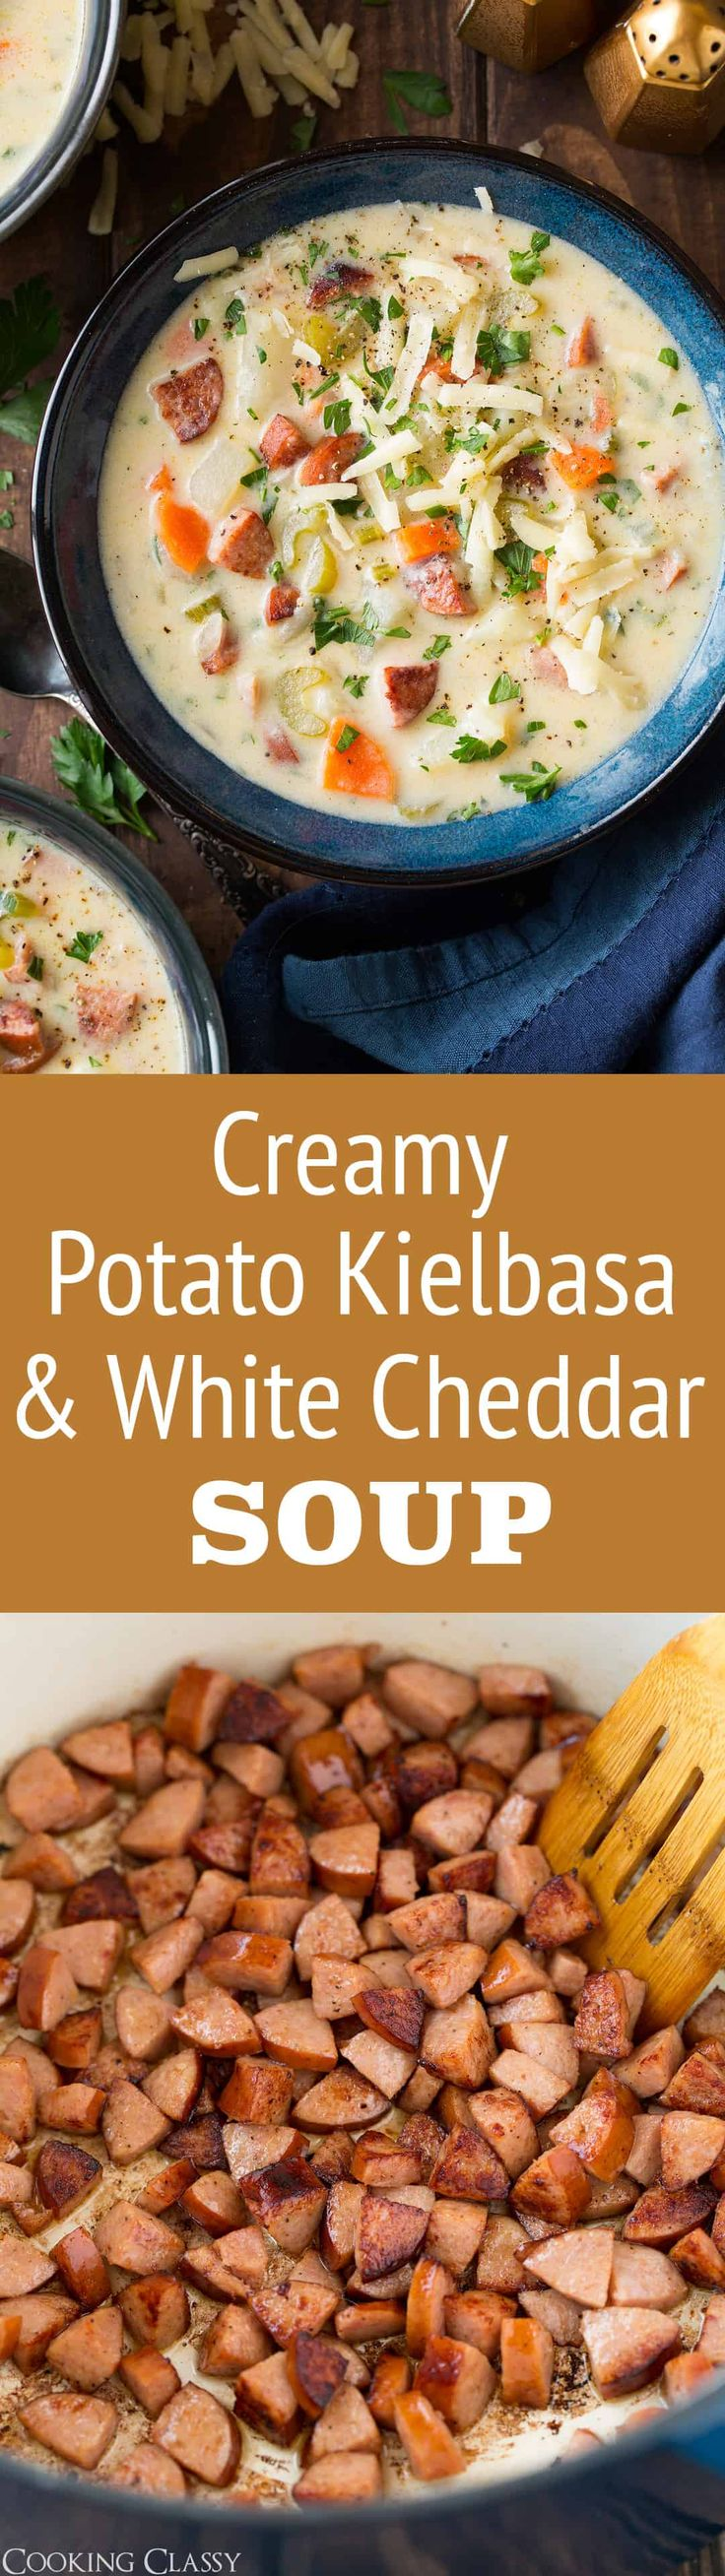 Creamy Potato Kielbasa and White Cheddar Soup - An incredibly filling and perfectly comforting soup for a chilly day! It has a delicious flavor blend of sausage, white cheddar and potatoes and chances are the whole family will love it! #soup #sausage #potatosoup